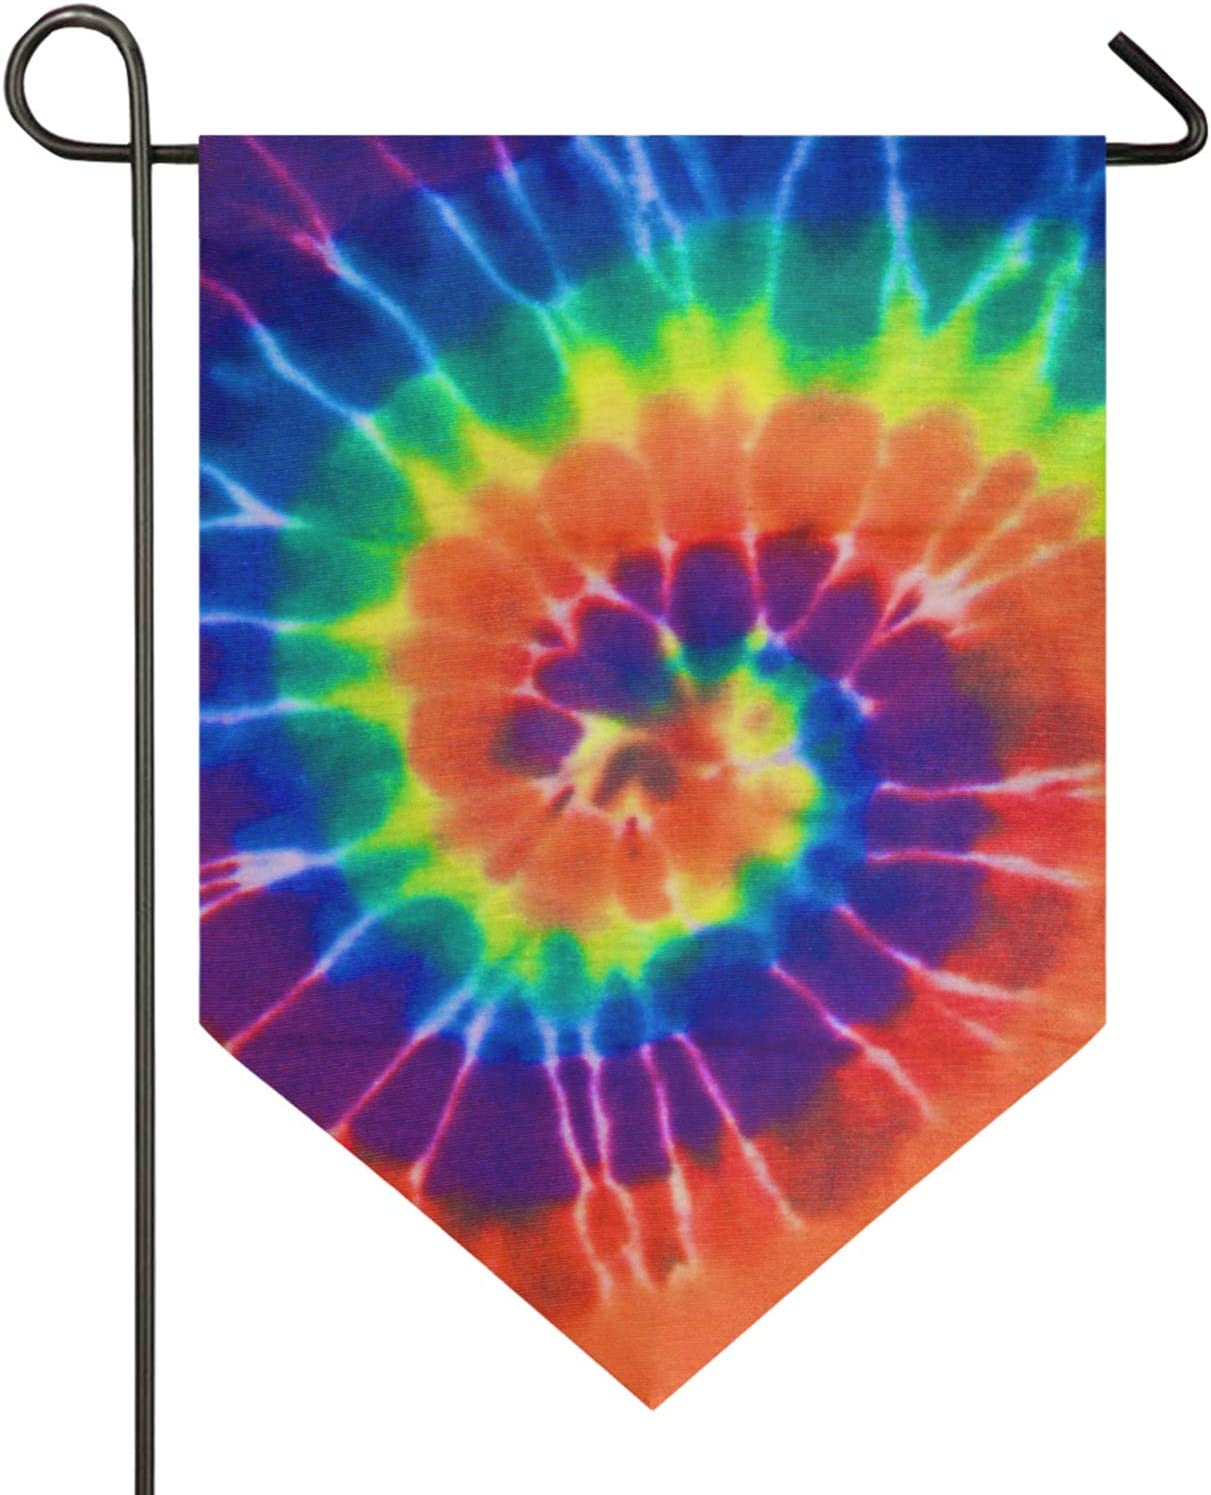 Oarencol Rainbow Tie Dye Colorful Watercolor Garden Flag Double Sided Home Yard Decor Banner Outdoor 12.5 x 18 Inch